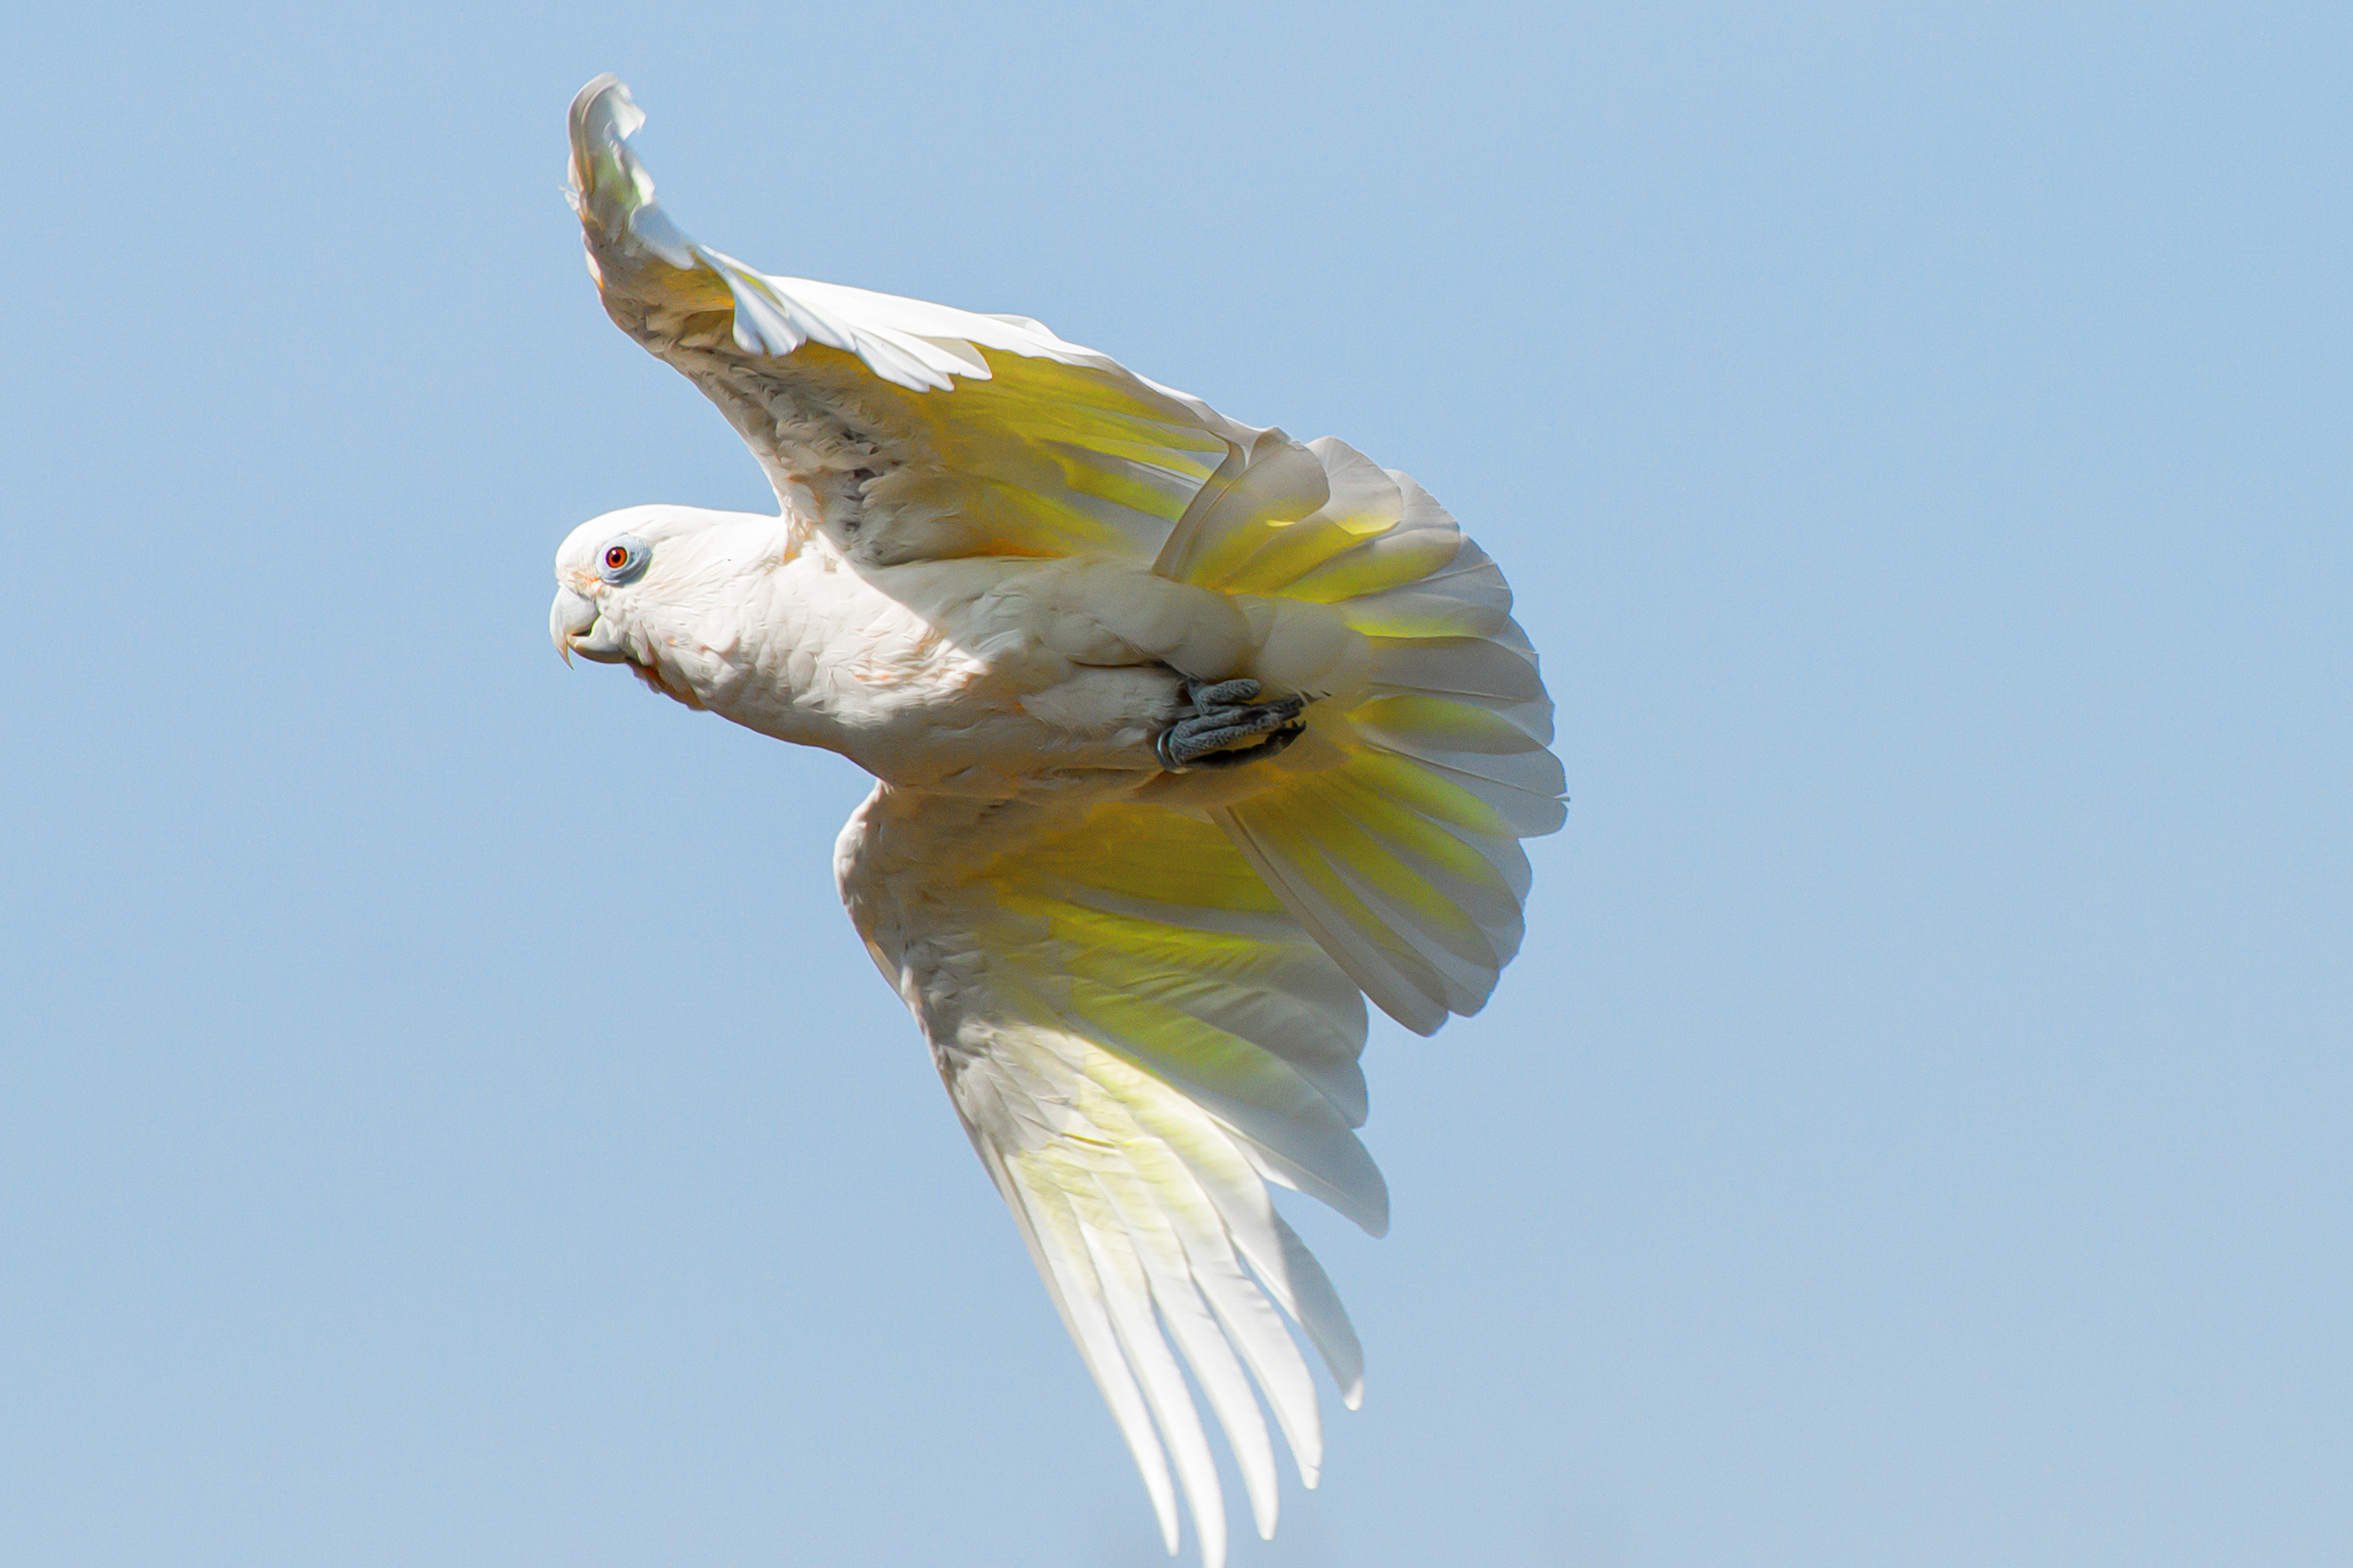 White parrot flying in the air 54715